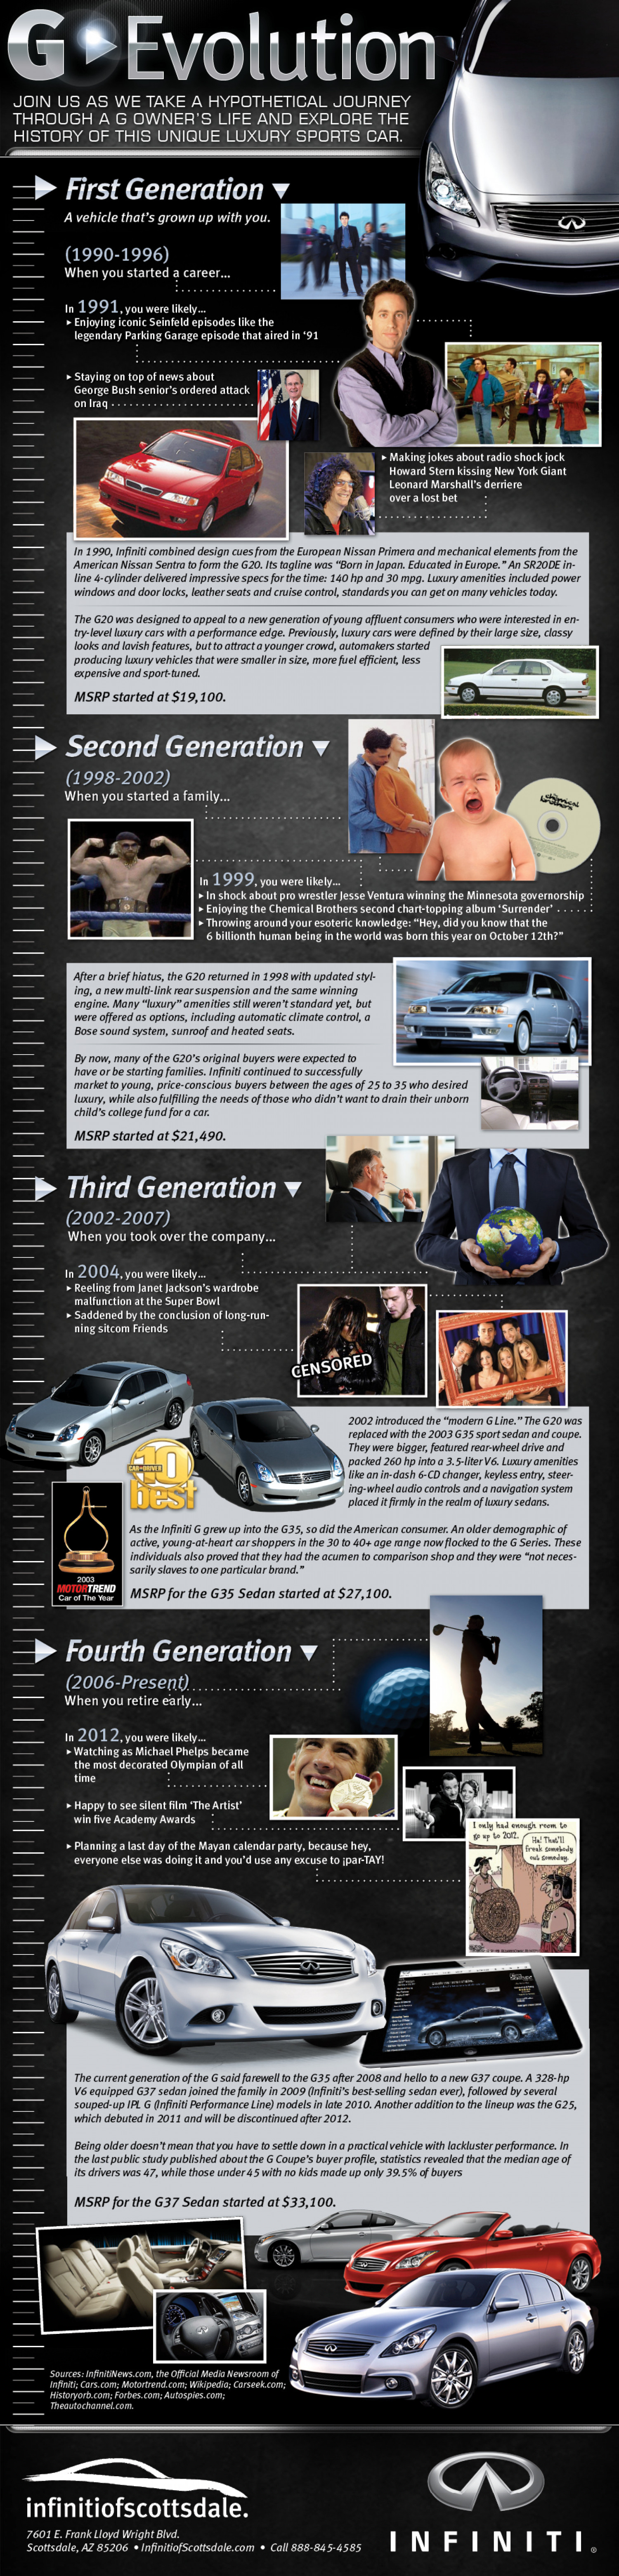 The History and Evolution of the Infiniti G  Infographic